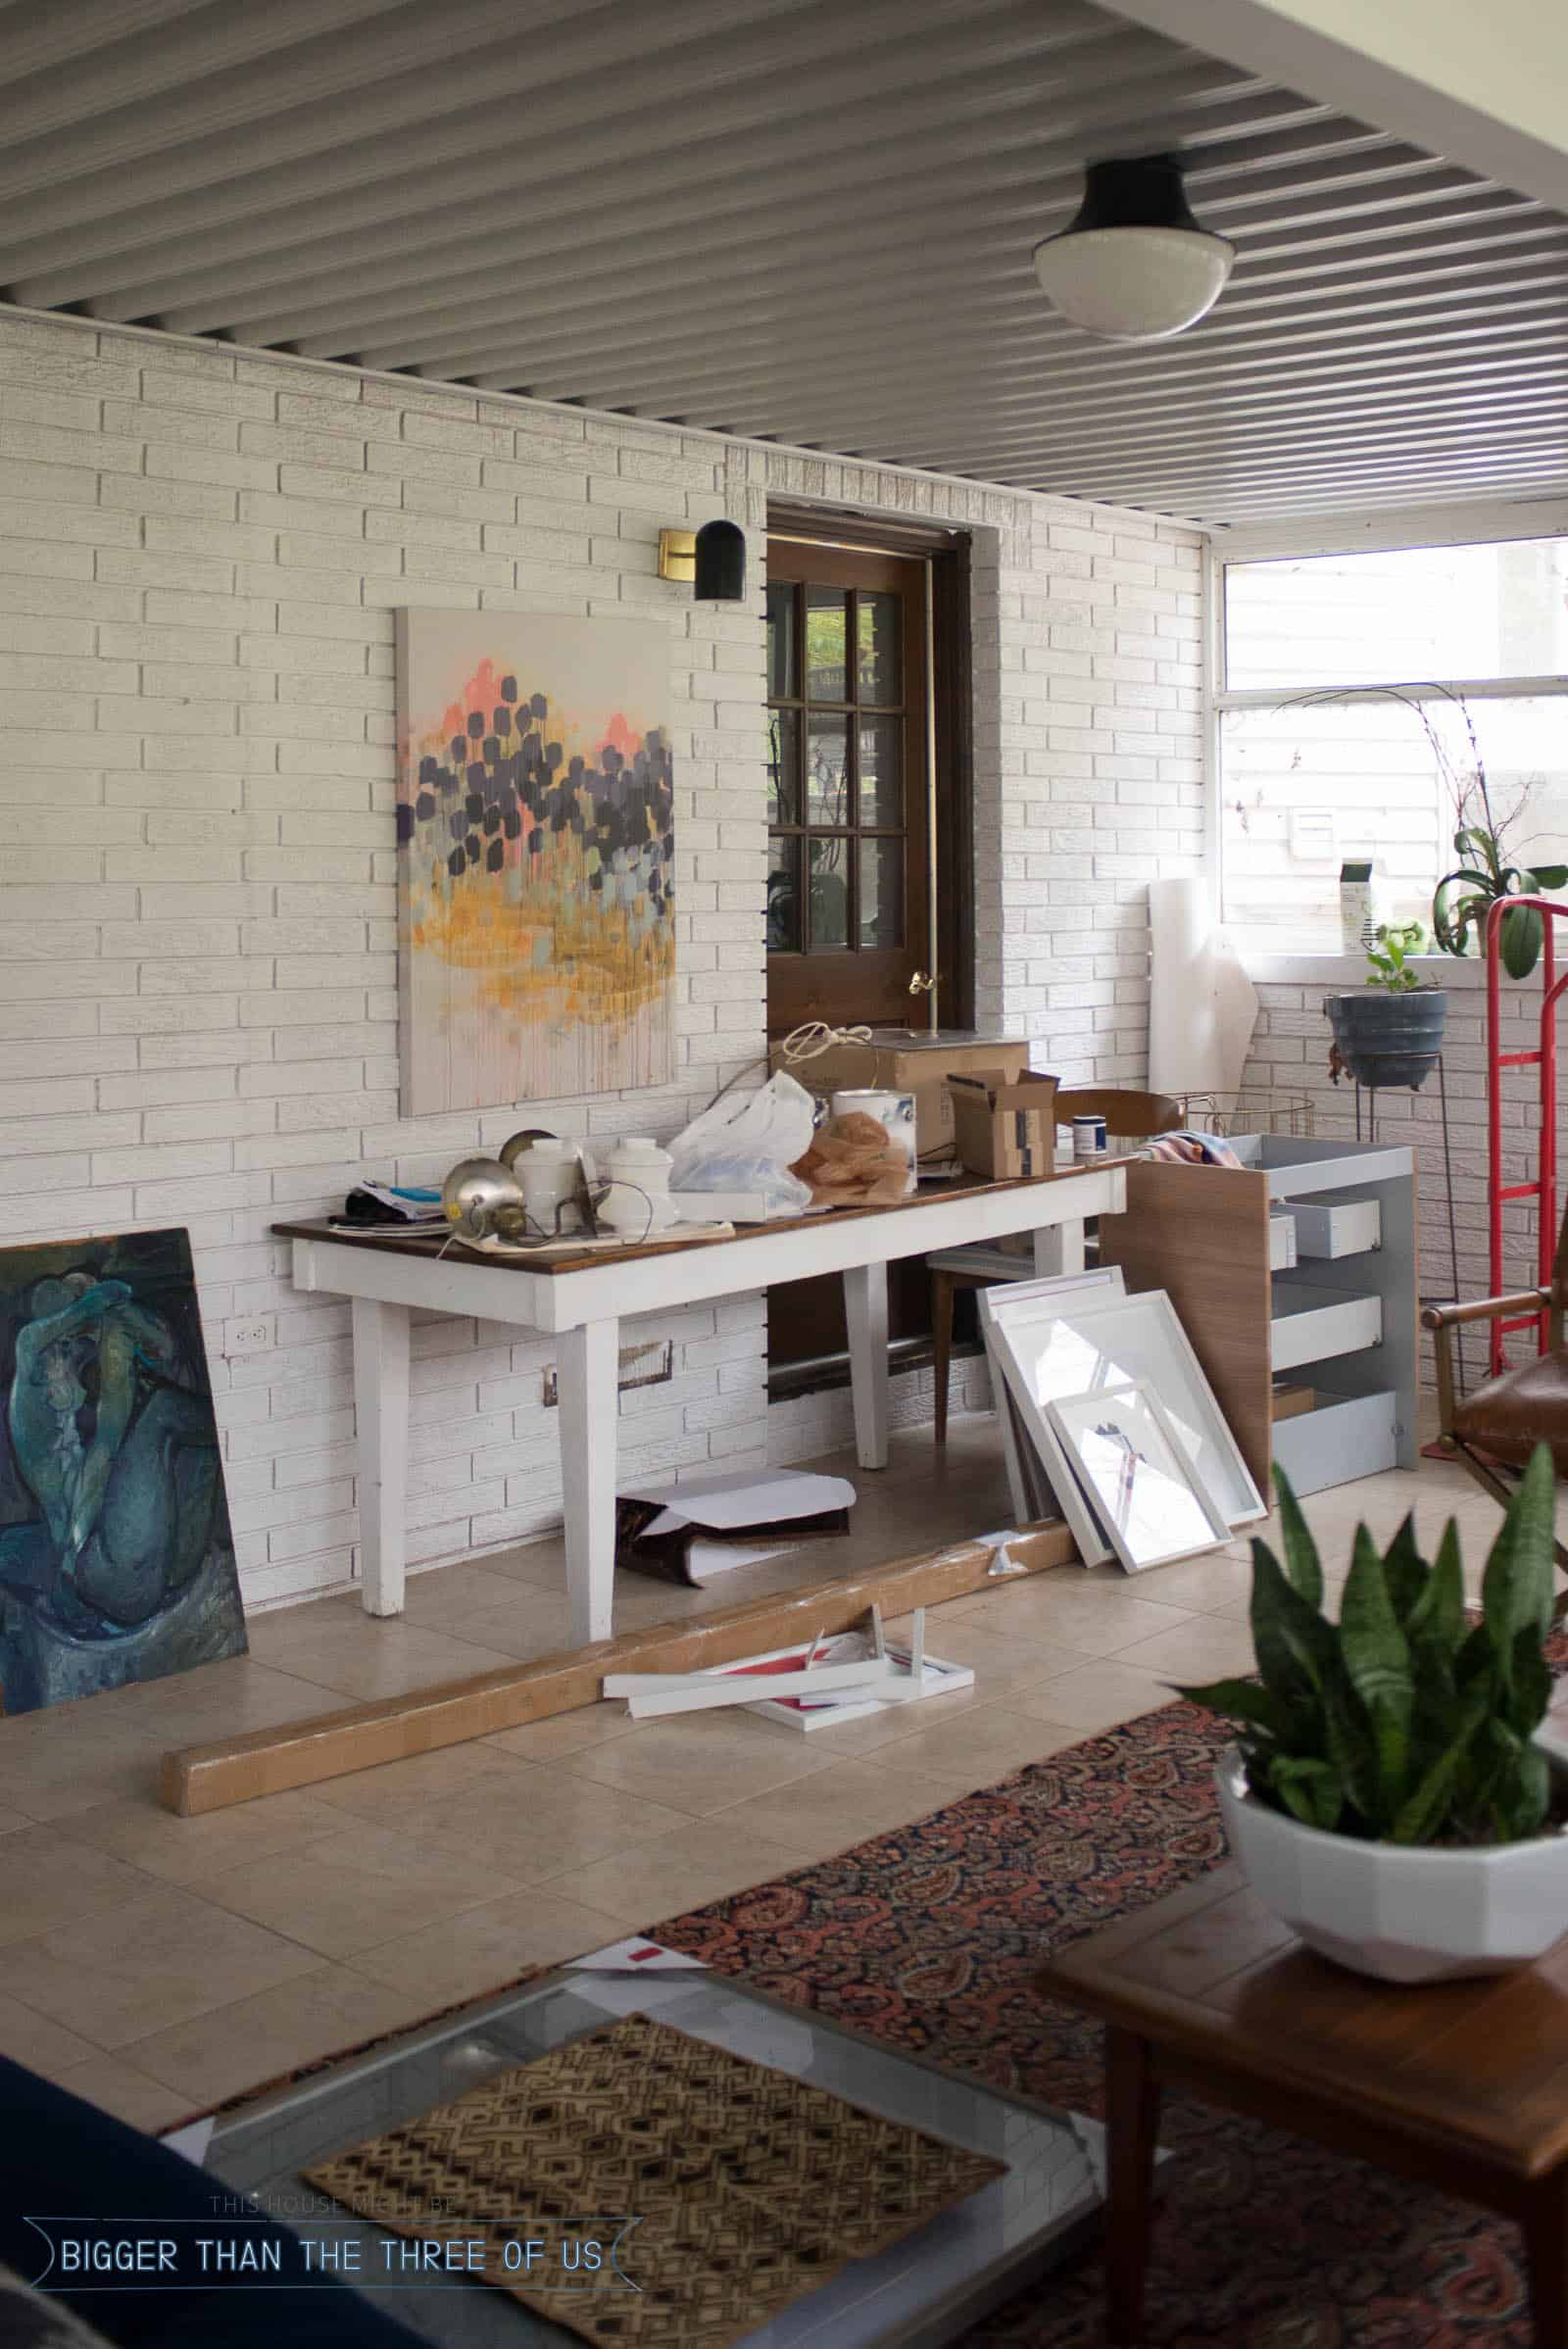 Wall in sunroom with projects supplies on table